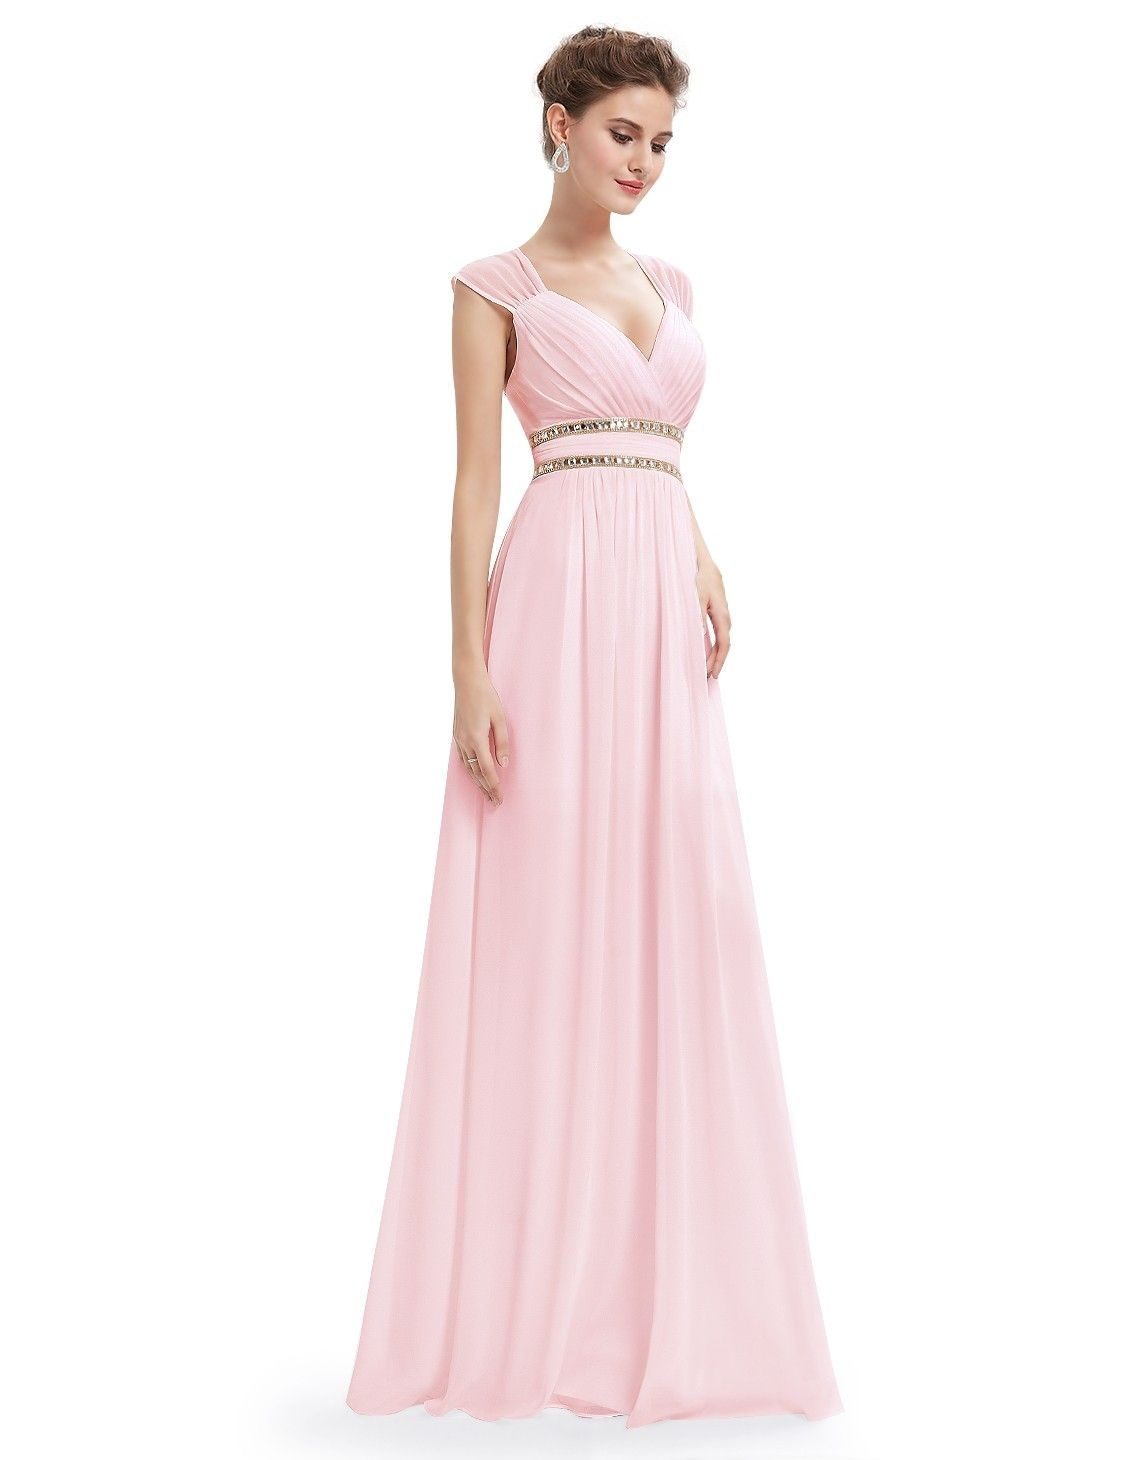 Sleeveless Grecian Style Evening Dress | Perfect prom dress, Grecian ...